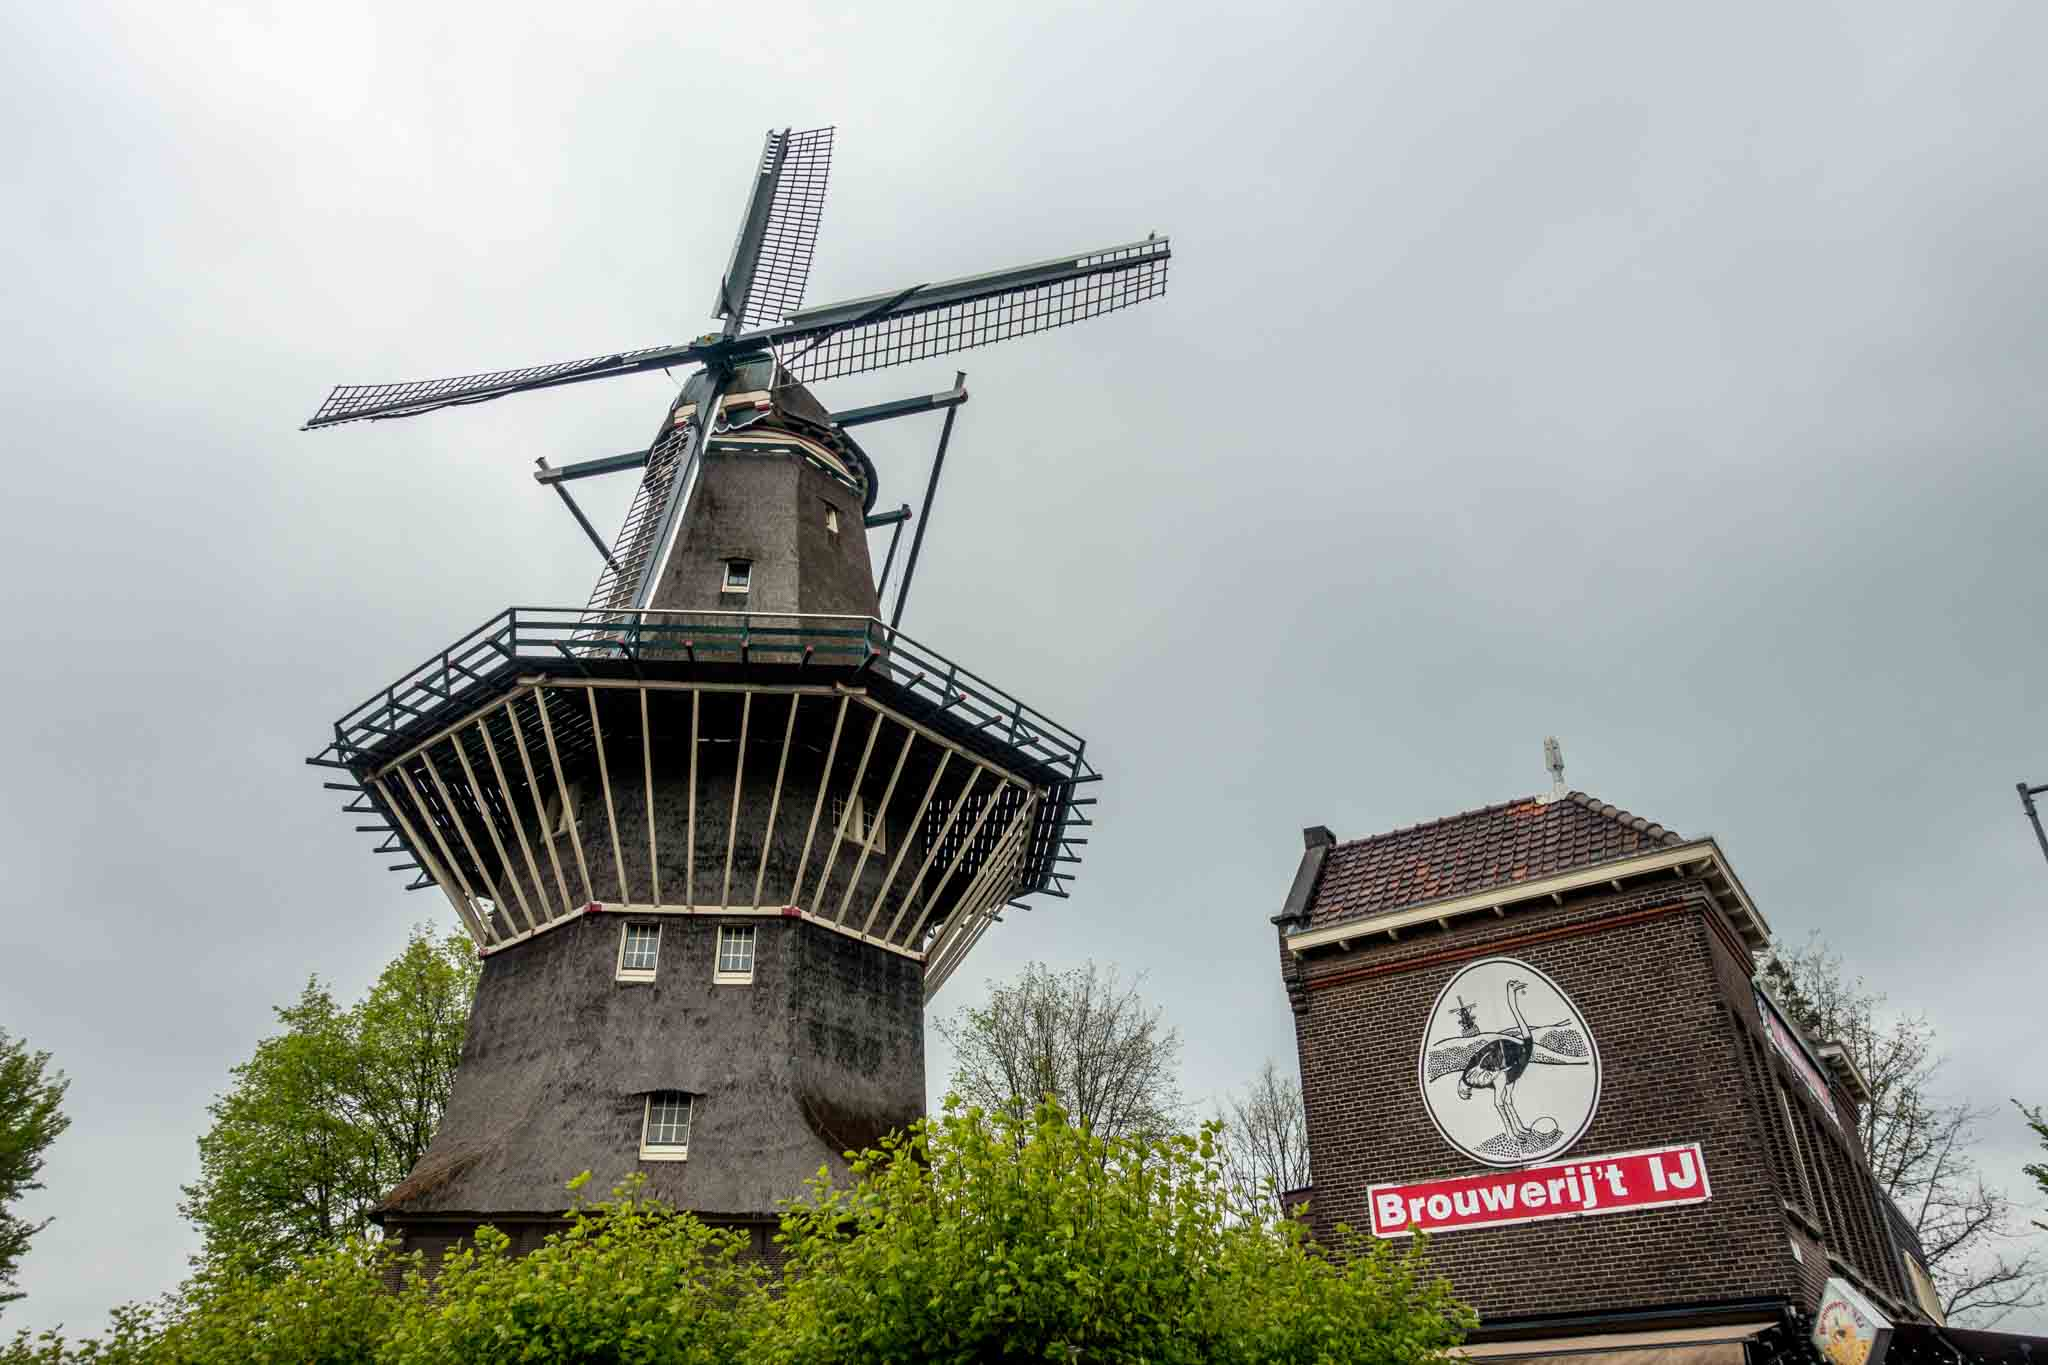 Windmill next to sign for Brouwerij 't IJ